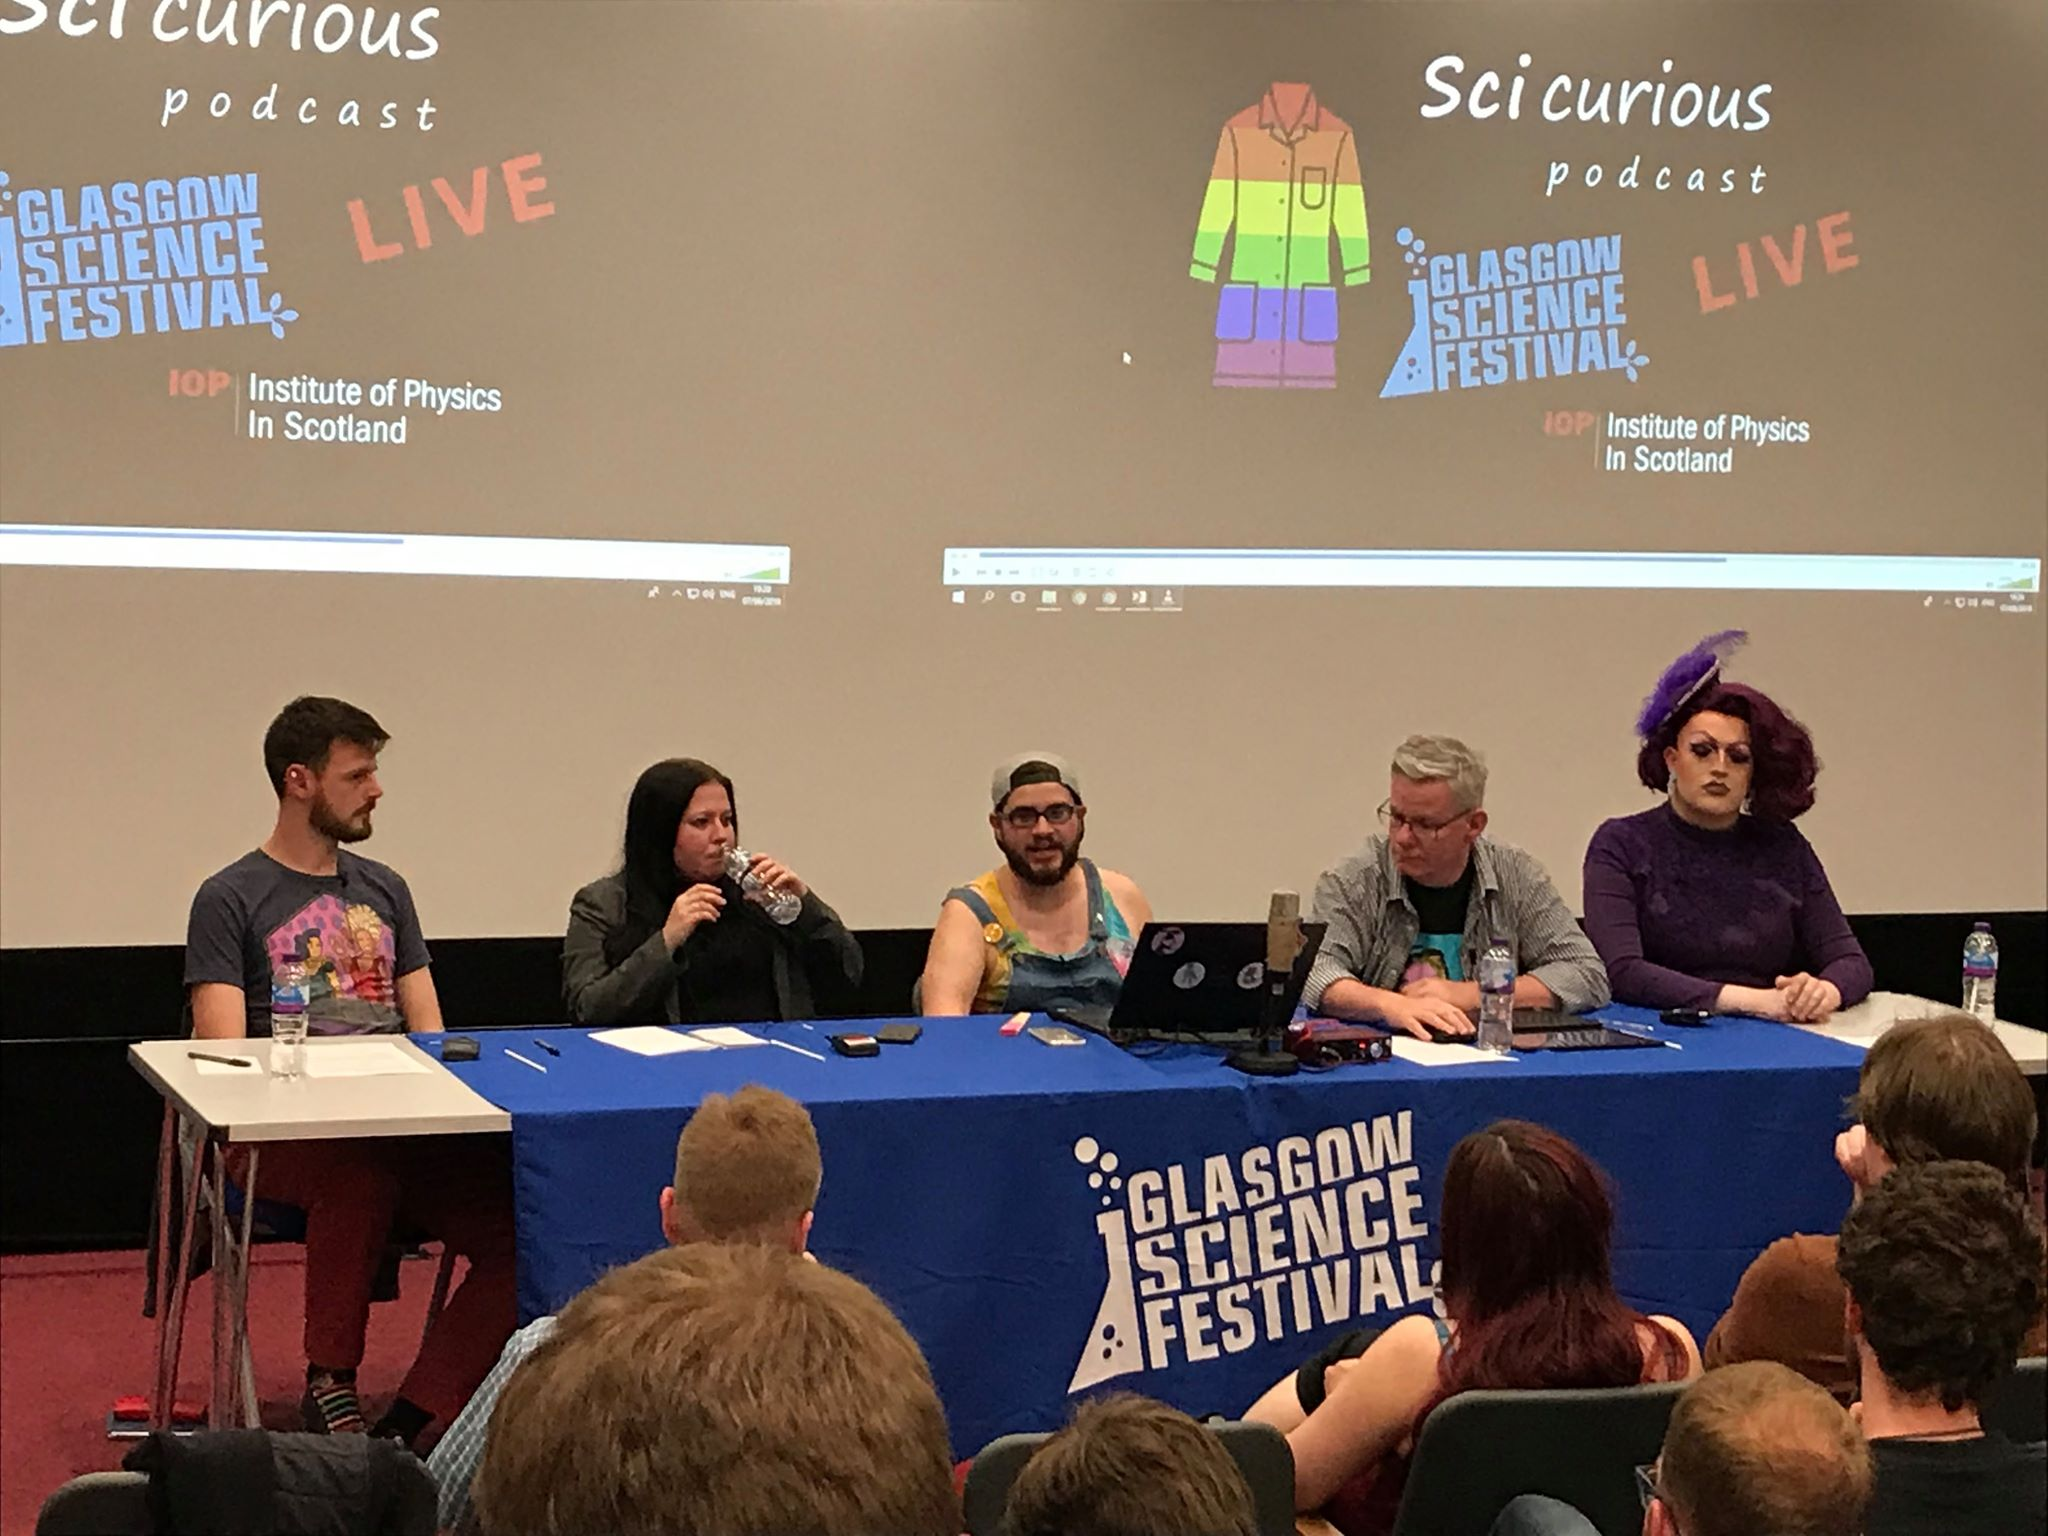 Live! - This month, we brough SciCurious into the meatspace with SciCurious: Live! Panellists (left to right) were Jon Orgill, Emily Nordmann, Martin Hendry and Lawrence Chaney!